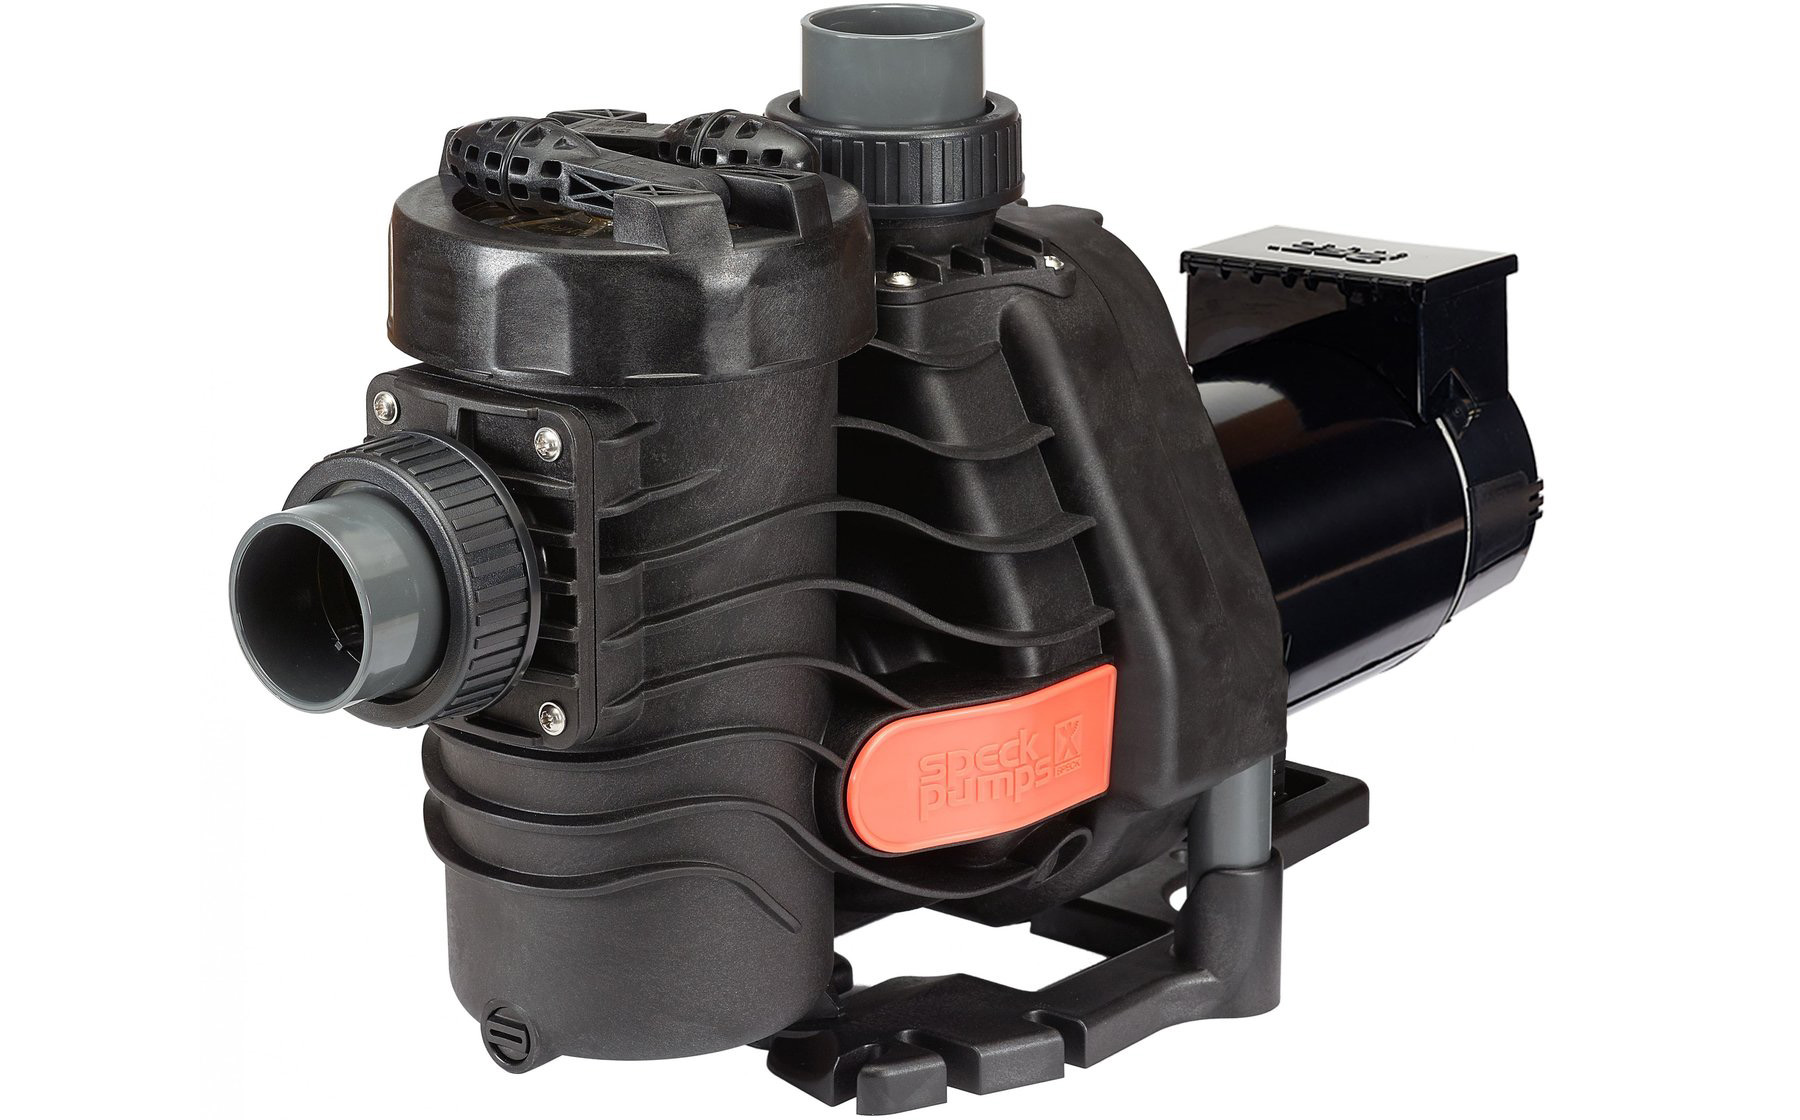 Speck®EasyFit® - The Speck EasyFit pump is a versatile, high performance pool pump. With universal fittings, saltwater compatibility, dry run protection, and unmatched durability, the EasyFit saves time and money for you and your customers.